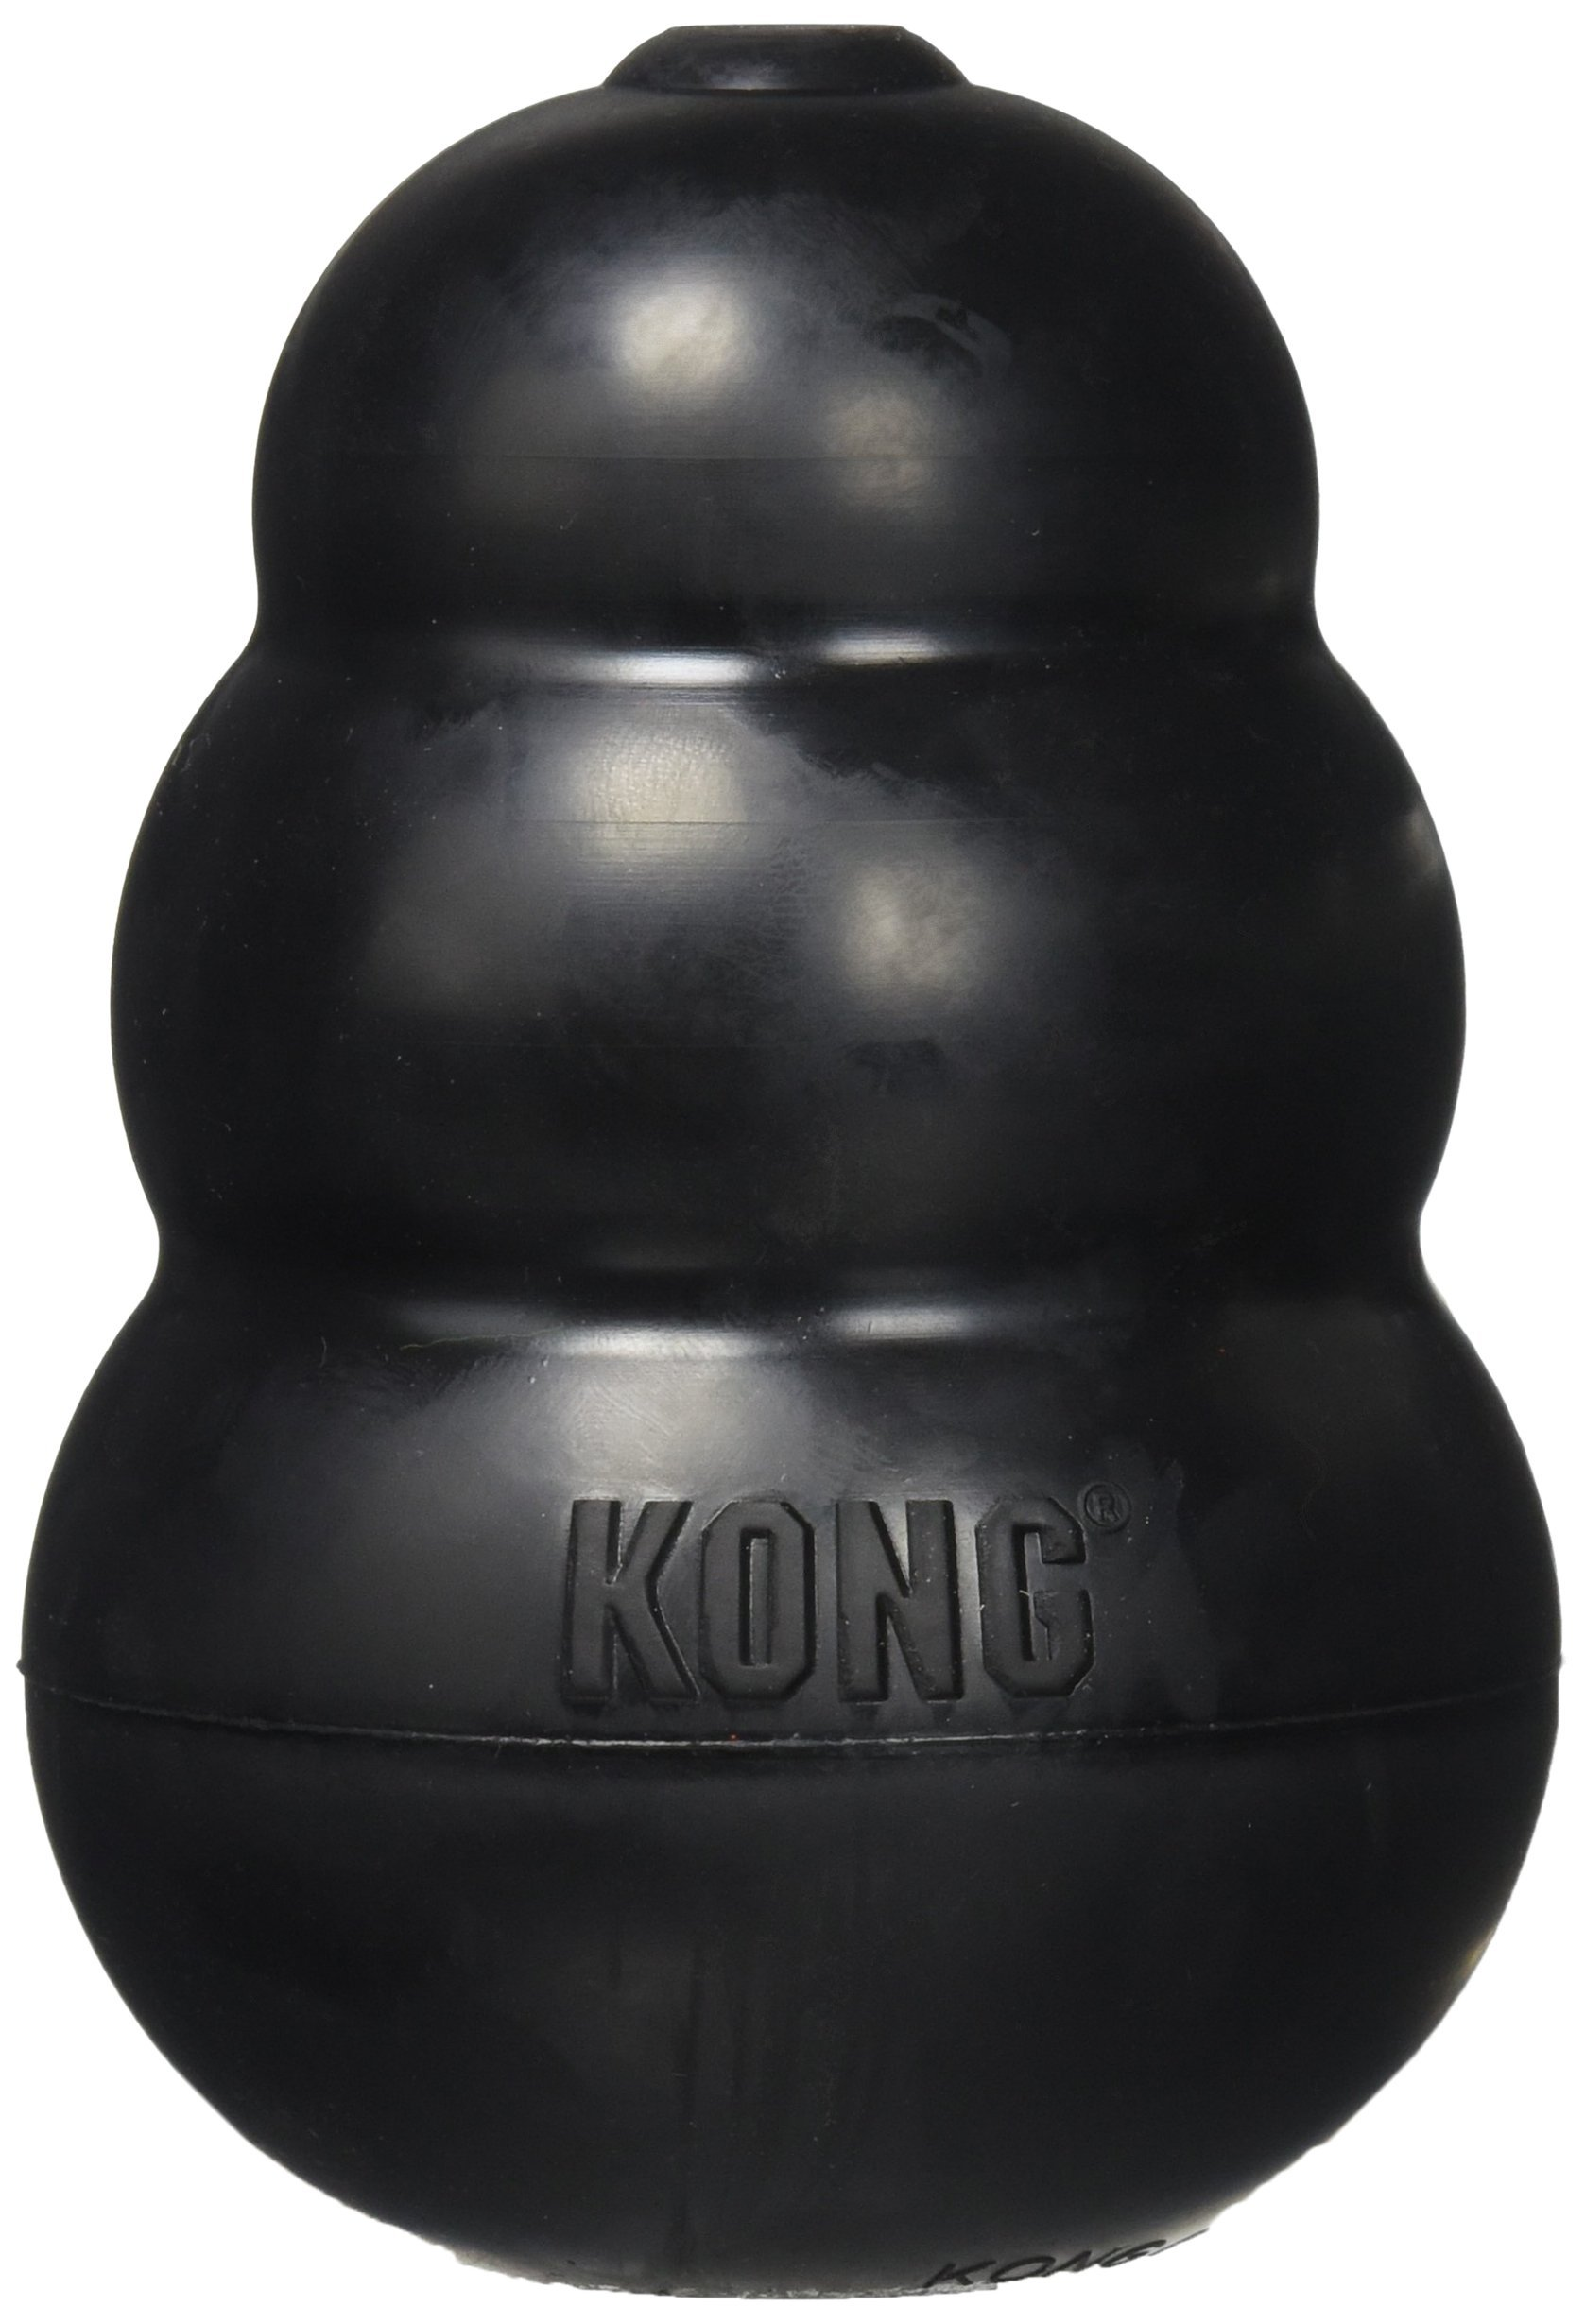 KONG Extreme Dog Toy (2 Pack), X-Large by KONG